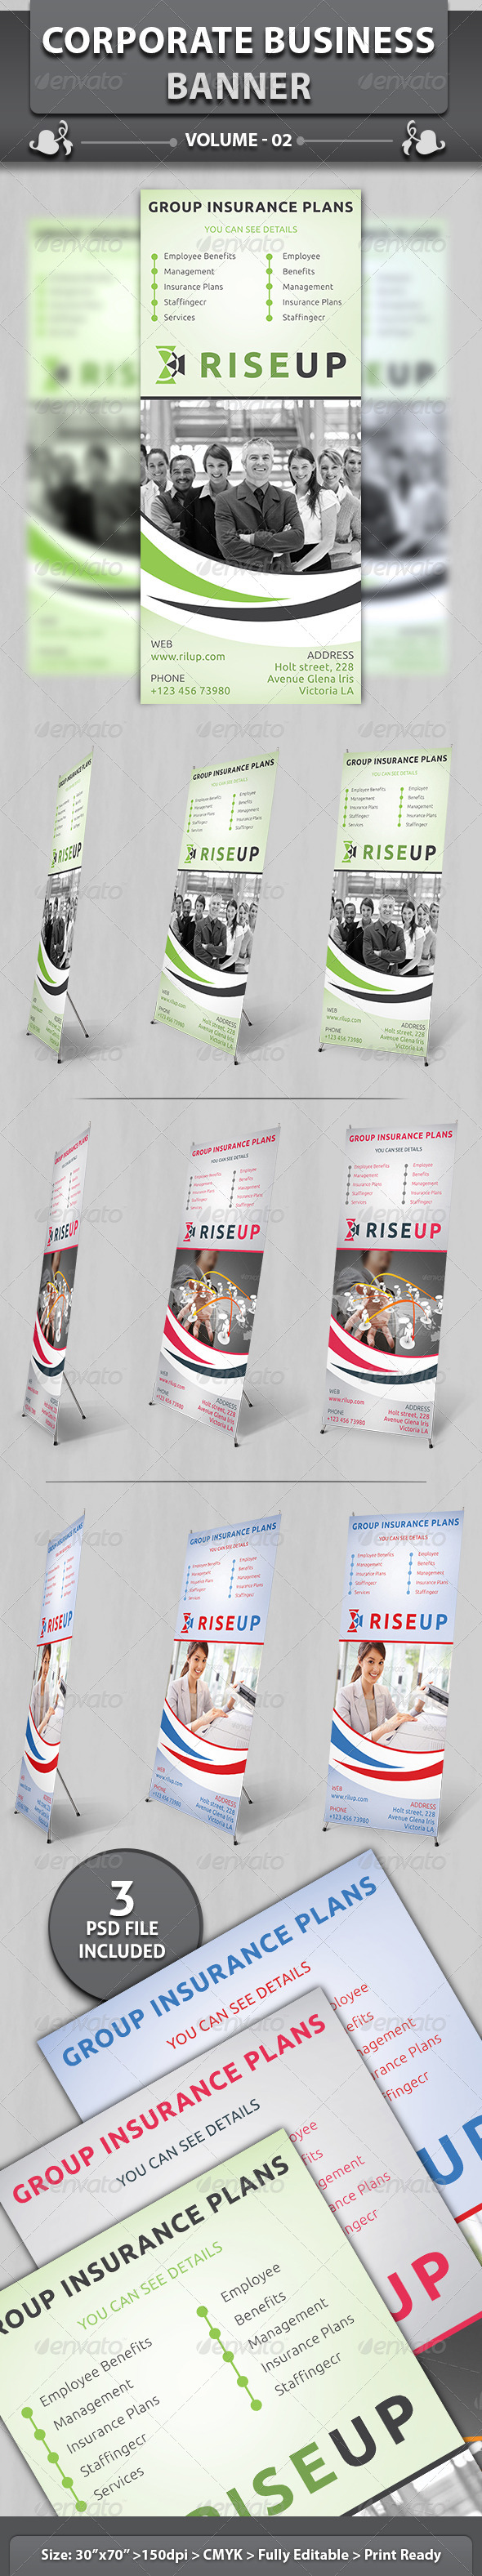 GraphicRiver Corporate Business Banner v2 5116681